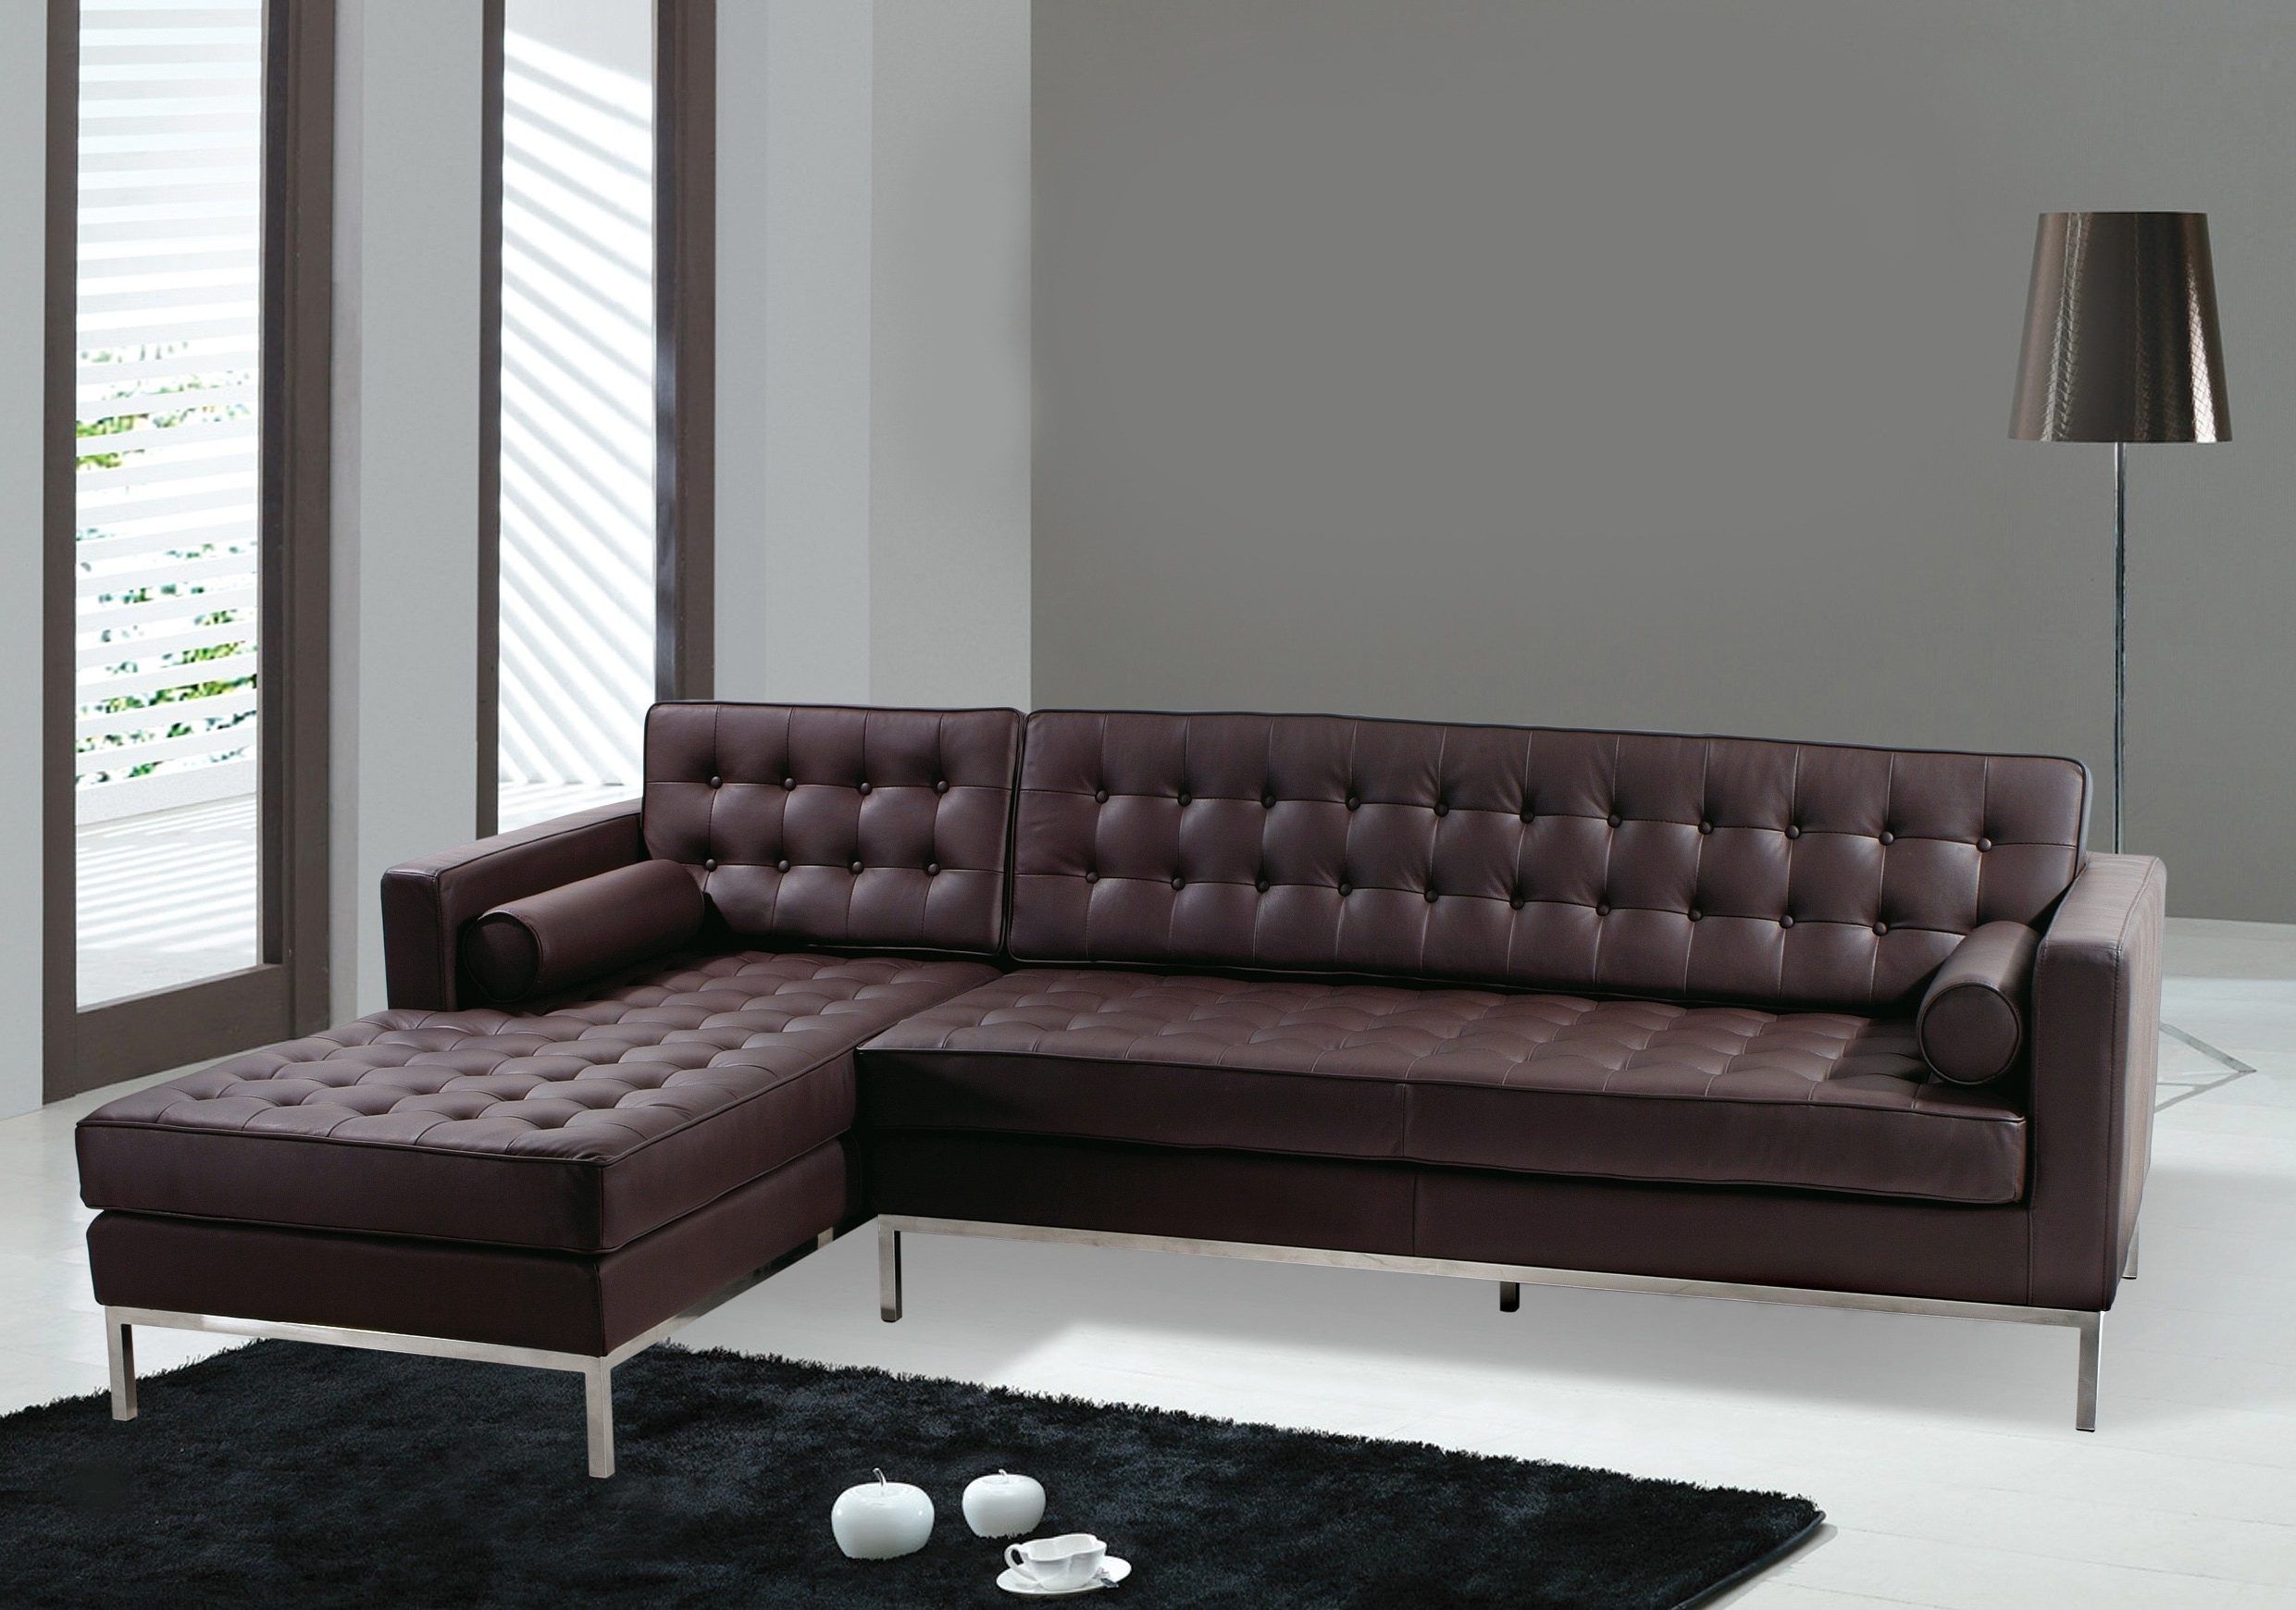 Well Liked Vancouver Bc Sectional Sofas With Regard To Best Of Sectional Sofa Bed Vancouver Bc – Mediasupload (View 9 of 20)